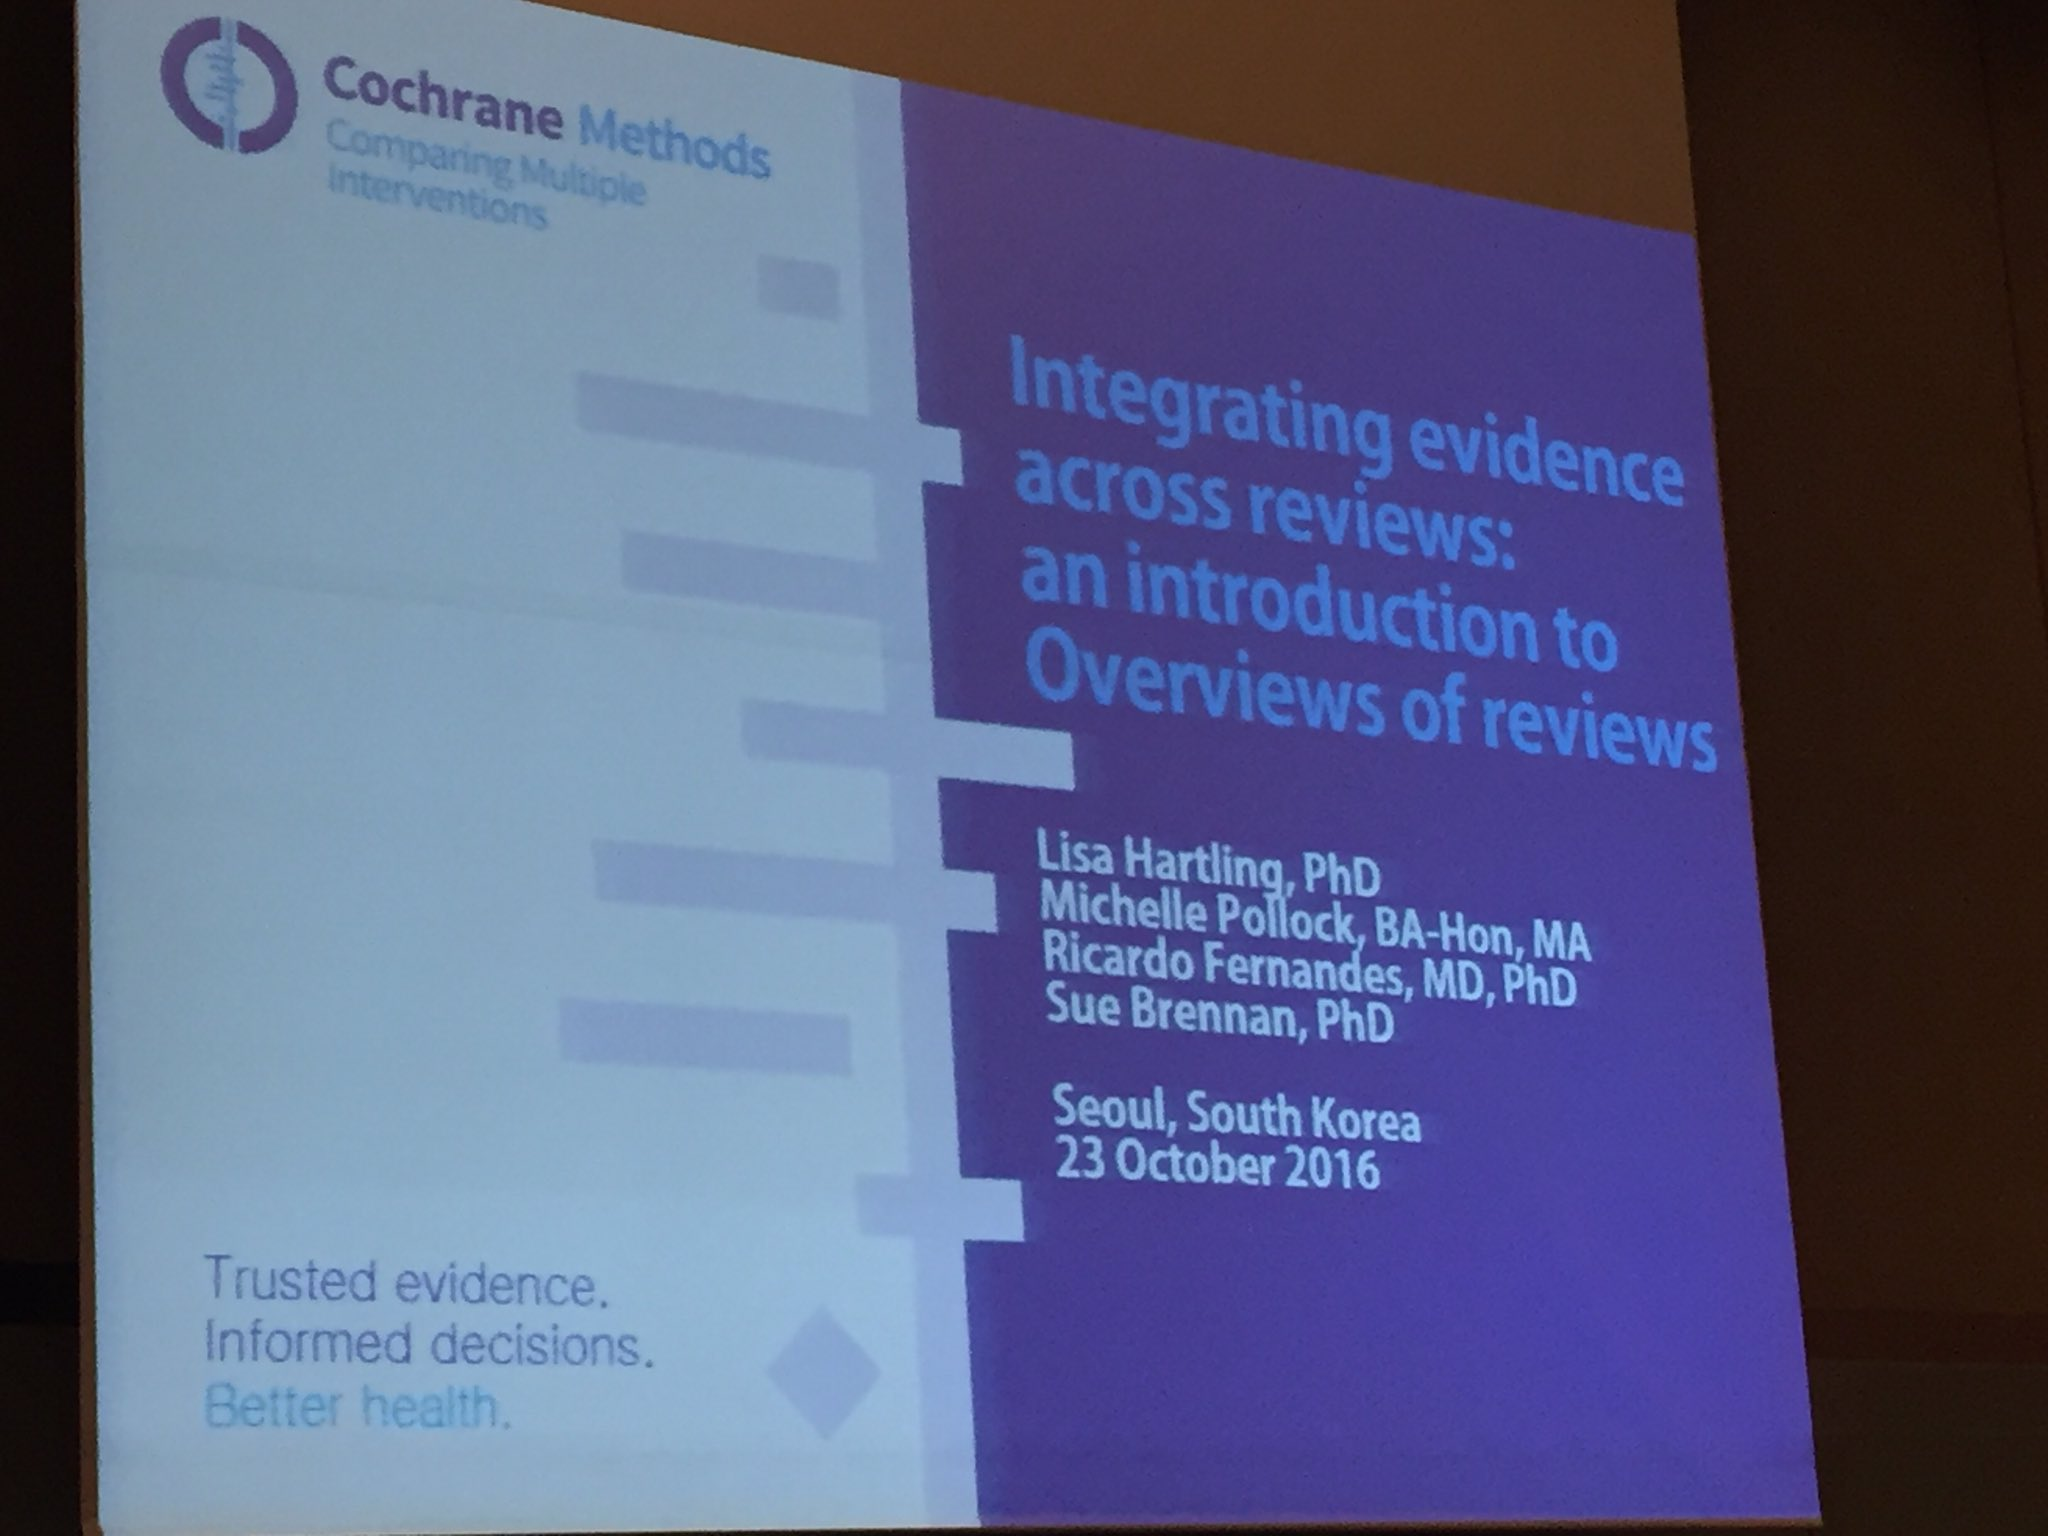 Day 1 #CochraneSeoul looking forward to workshop on overviews of #systematicreviews https://t.co/NcQlLzm8dE